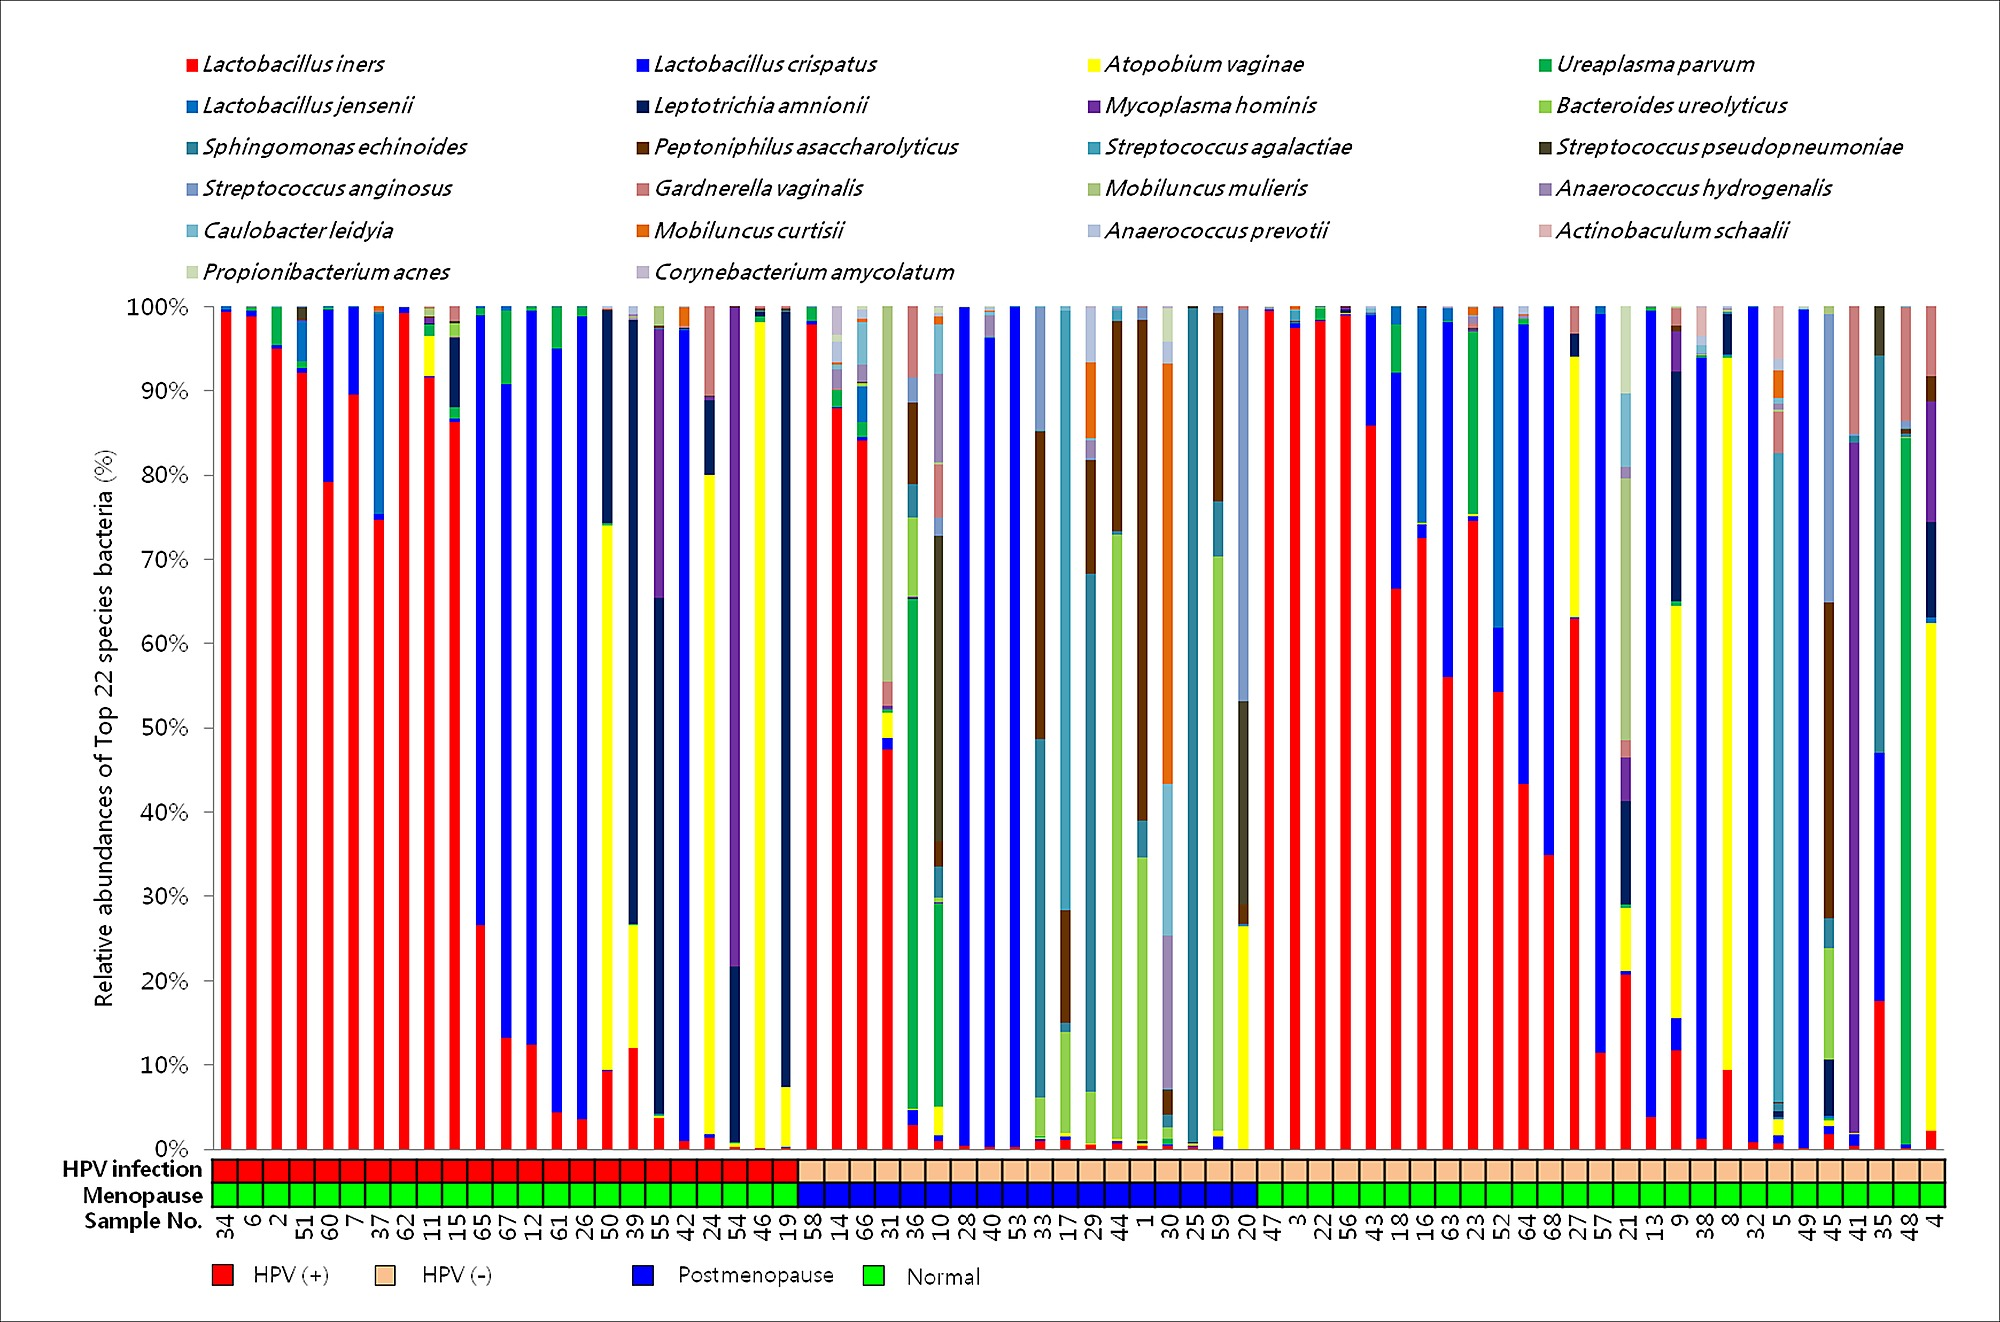 Association of the Vaginal Microbiota with Human Papillomavirus